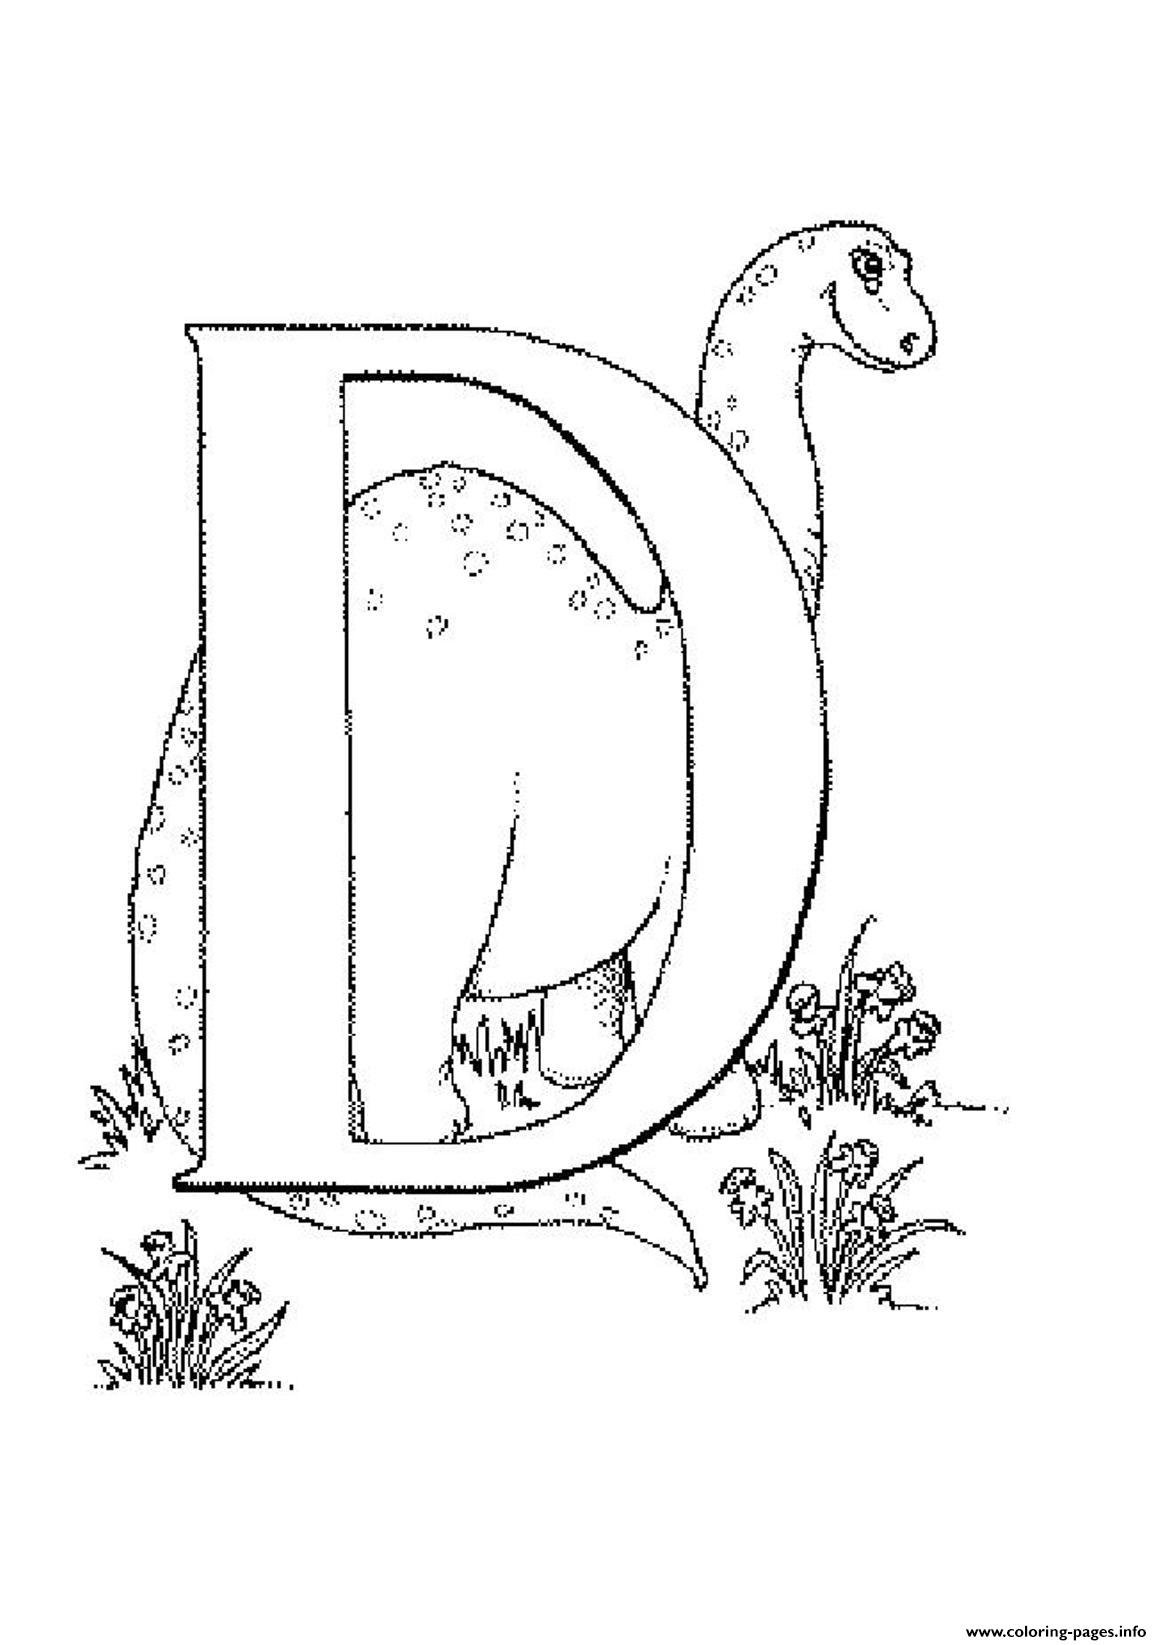 Printable Alphabet S D For Dino066c coloring pages